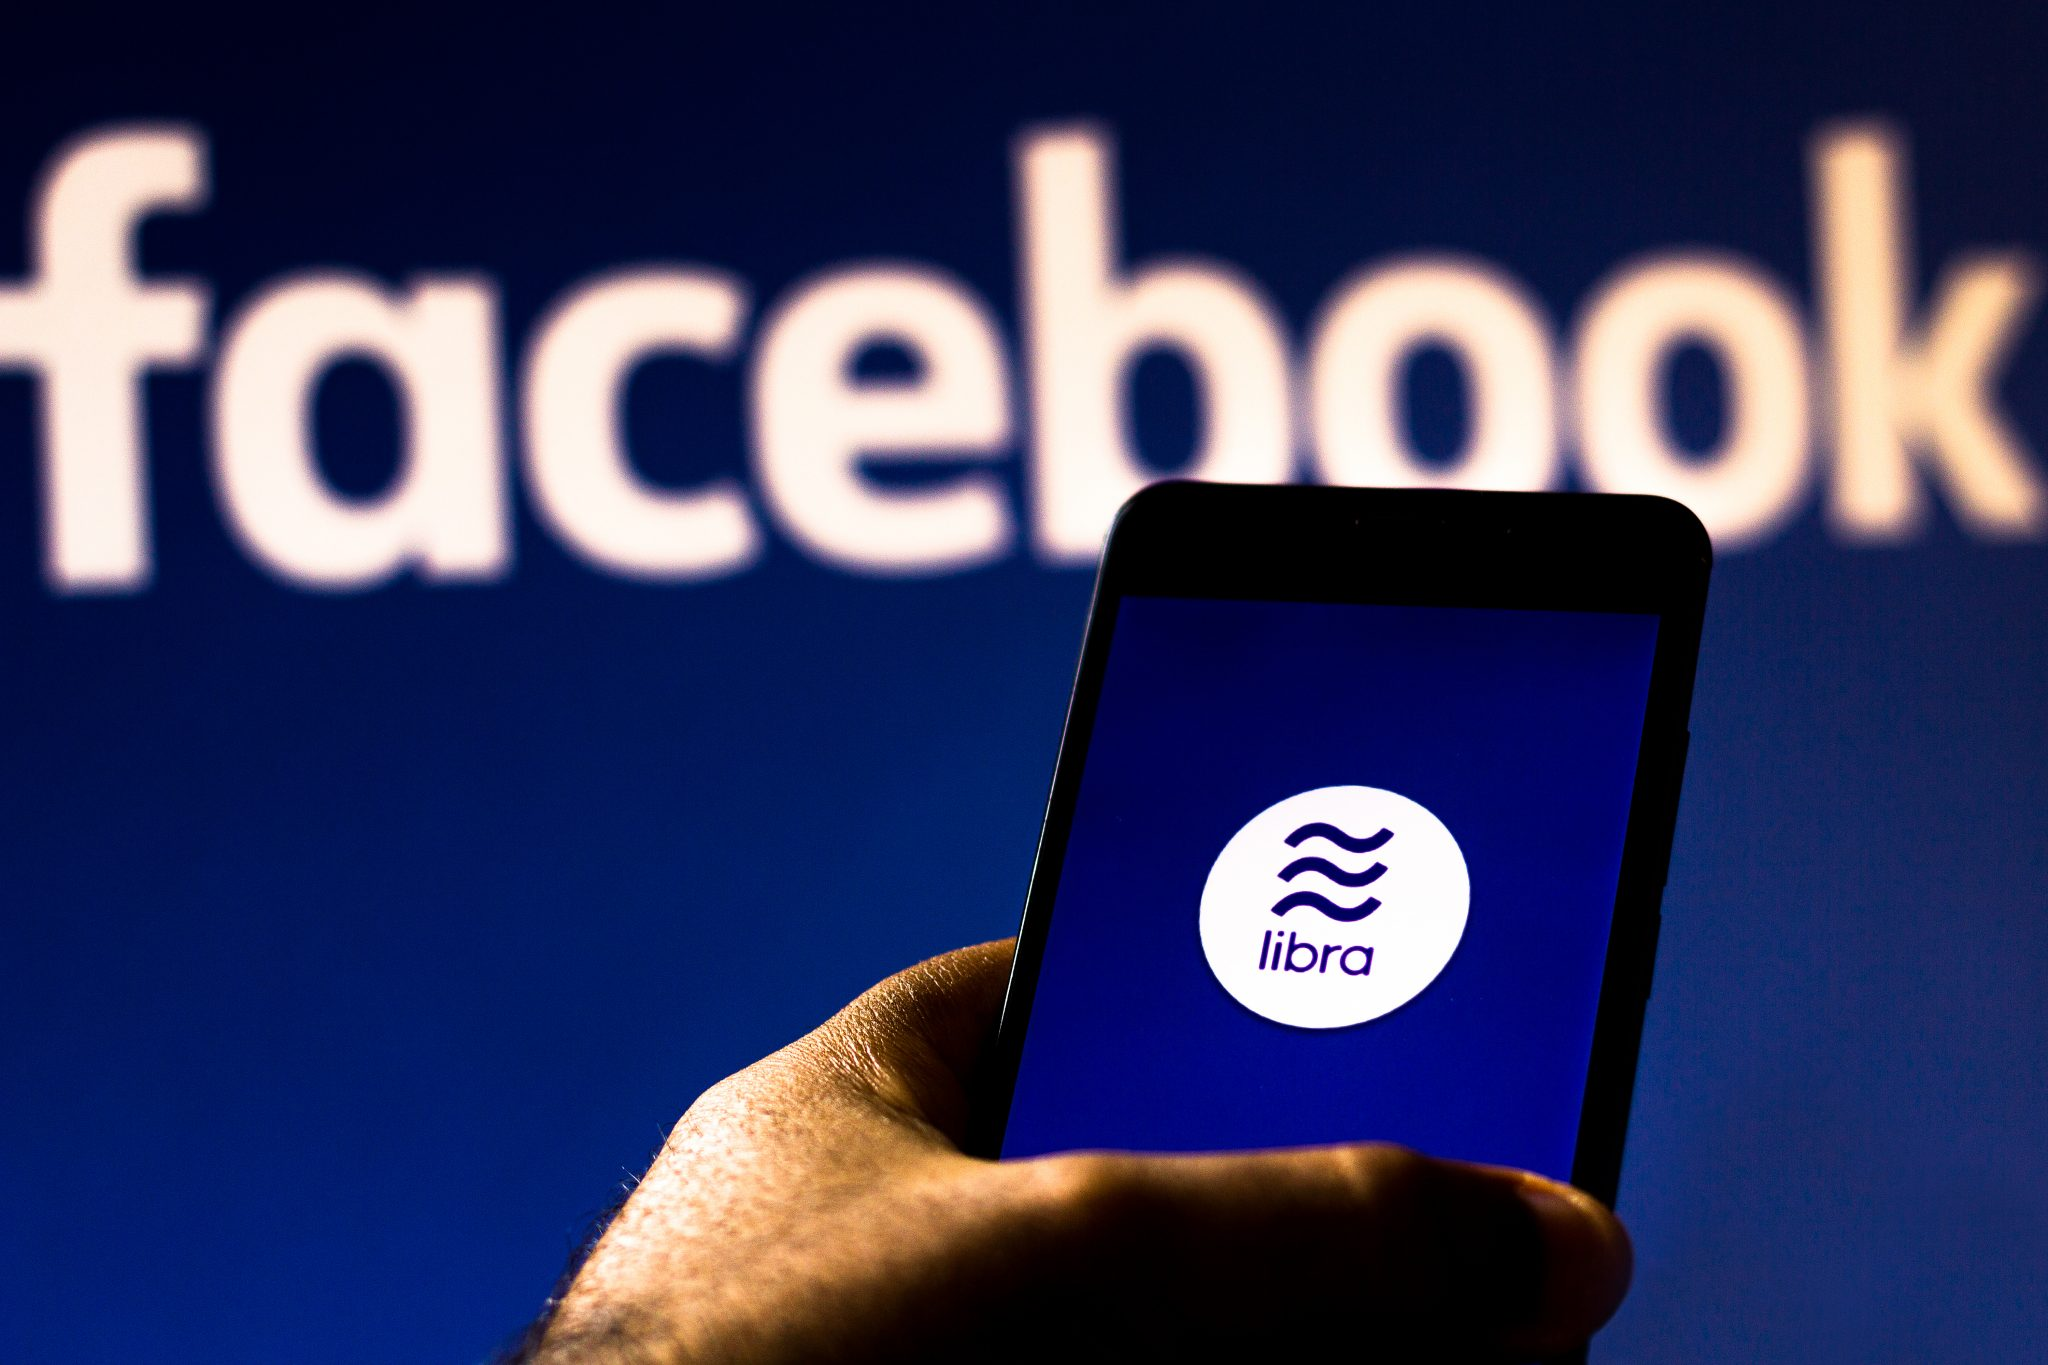 August 20, 2019, Brazil. In this photo illustration the Facebook Libra logo is displayed on a smartphone